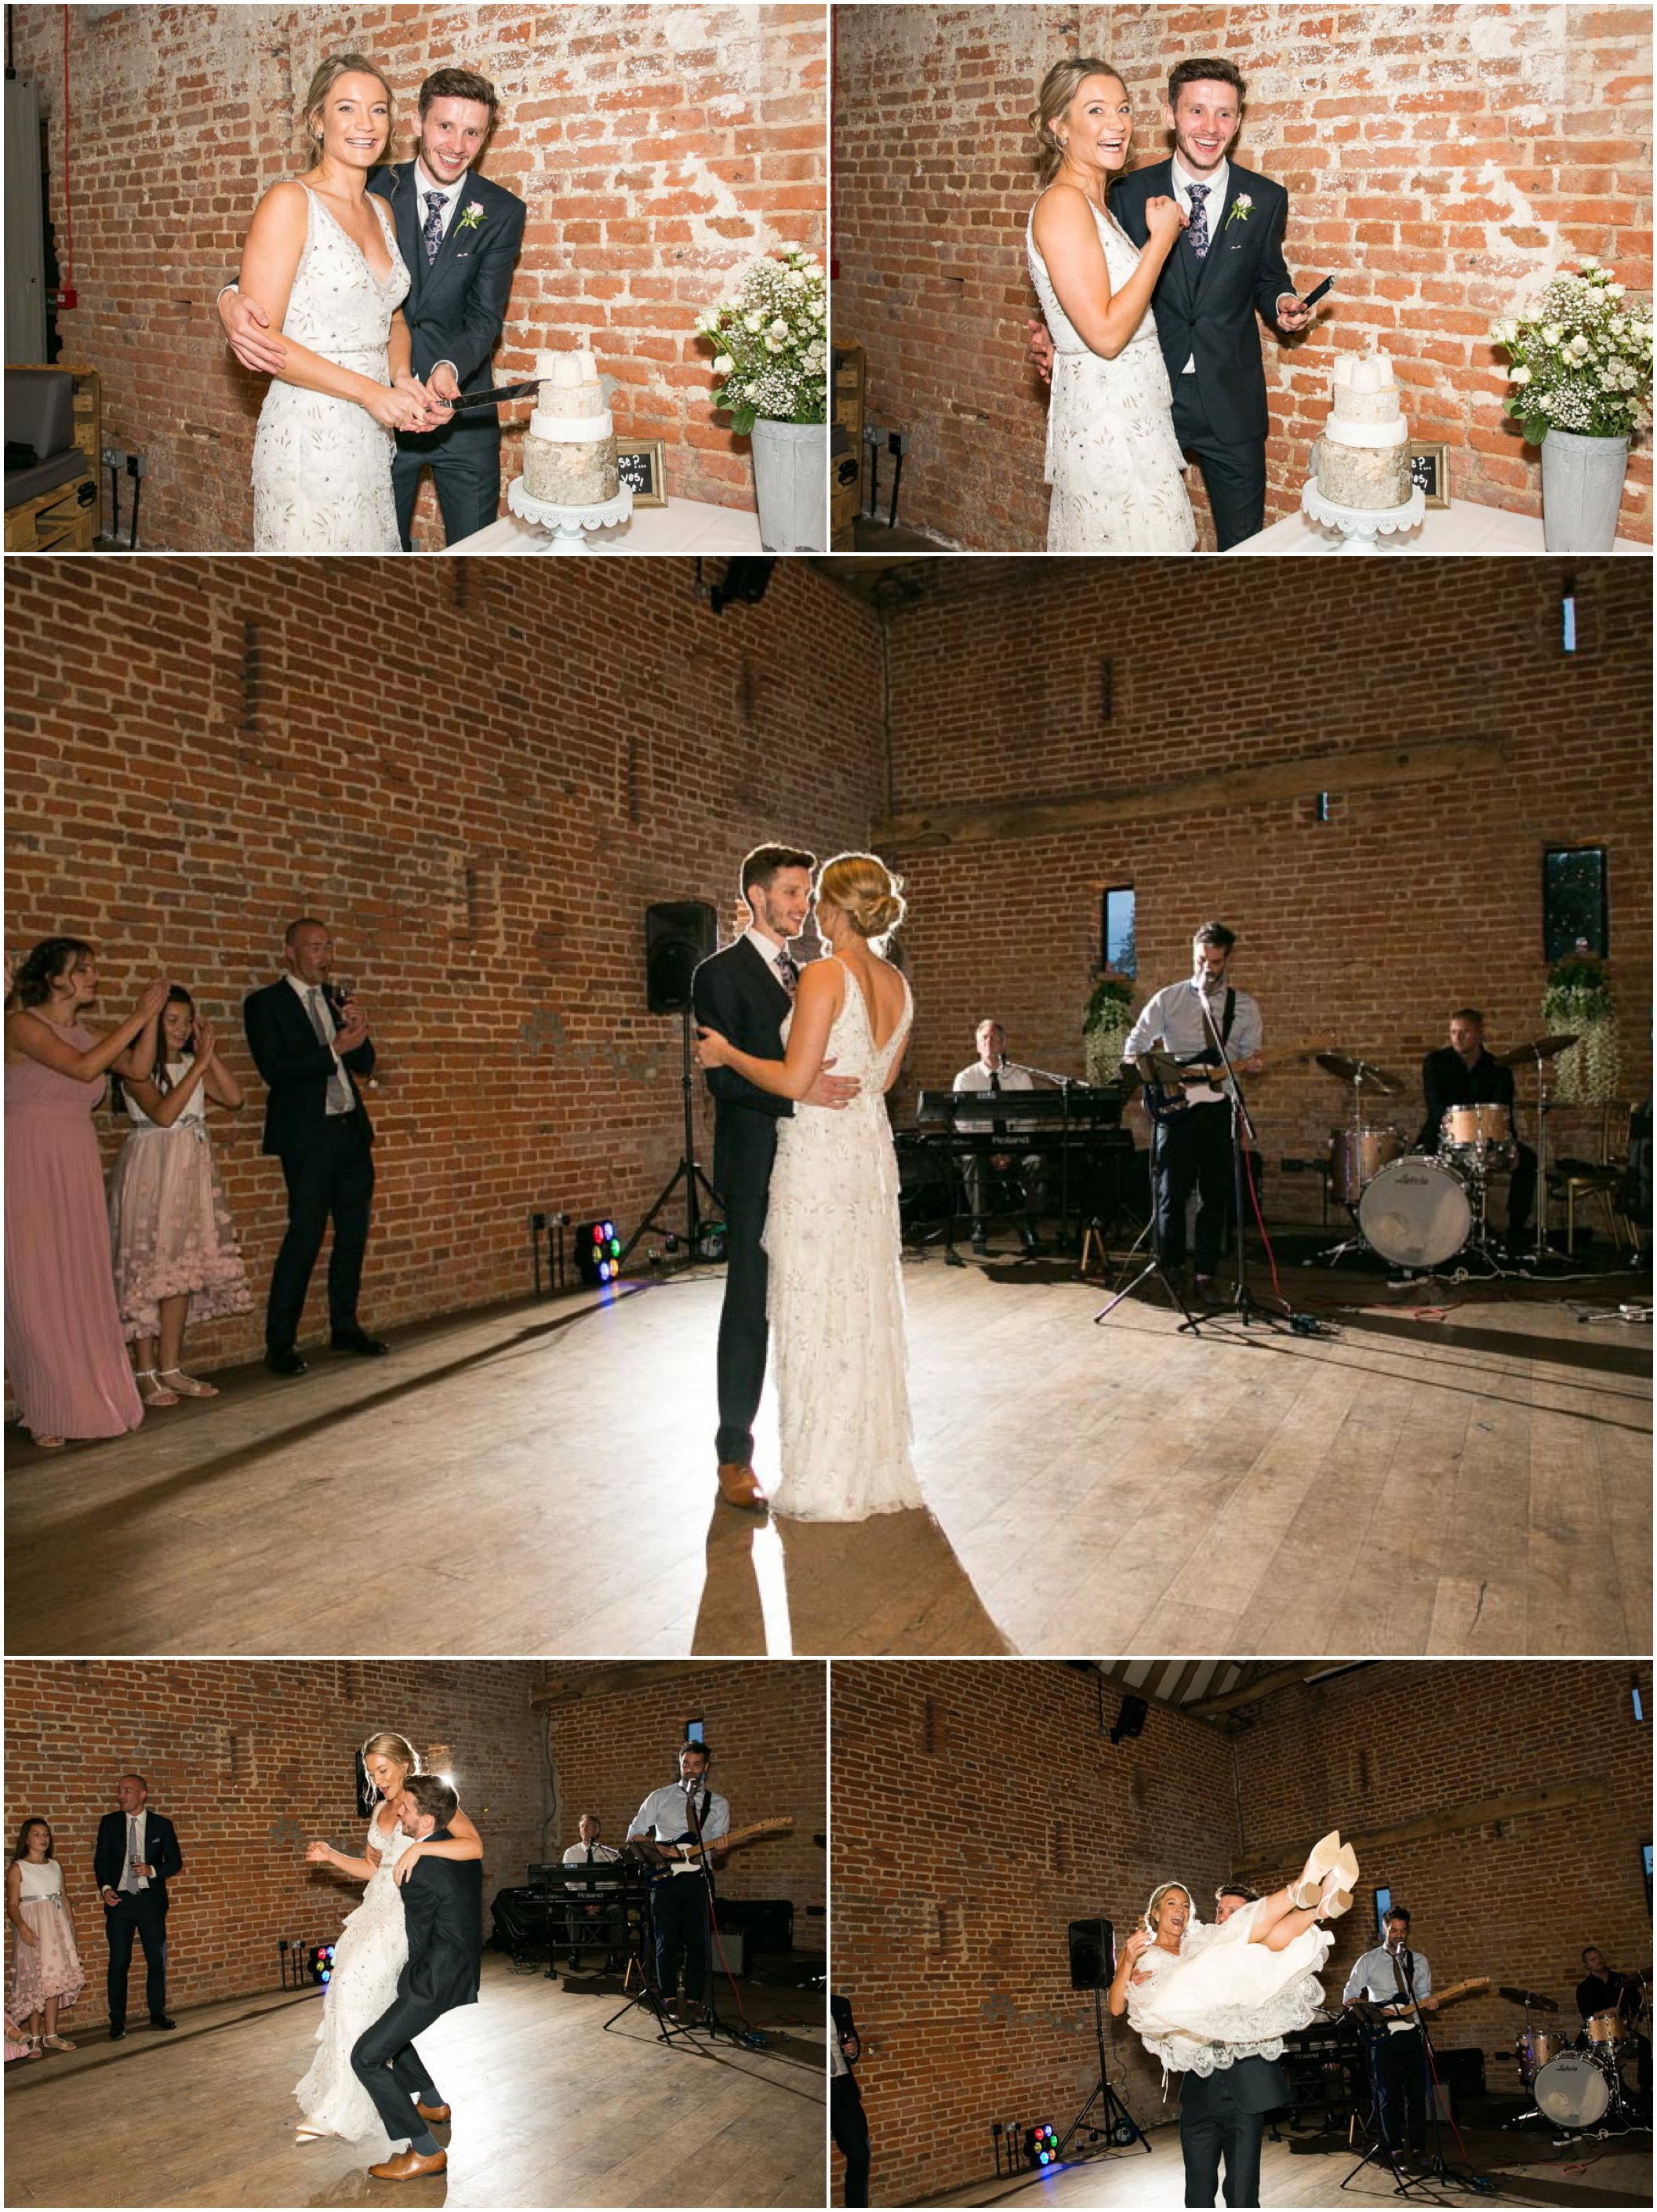 bride and groom cutting their wedding cheese cake, and then then having their first dance with light shining from behind, groom picks bride up